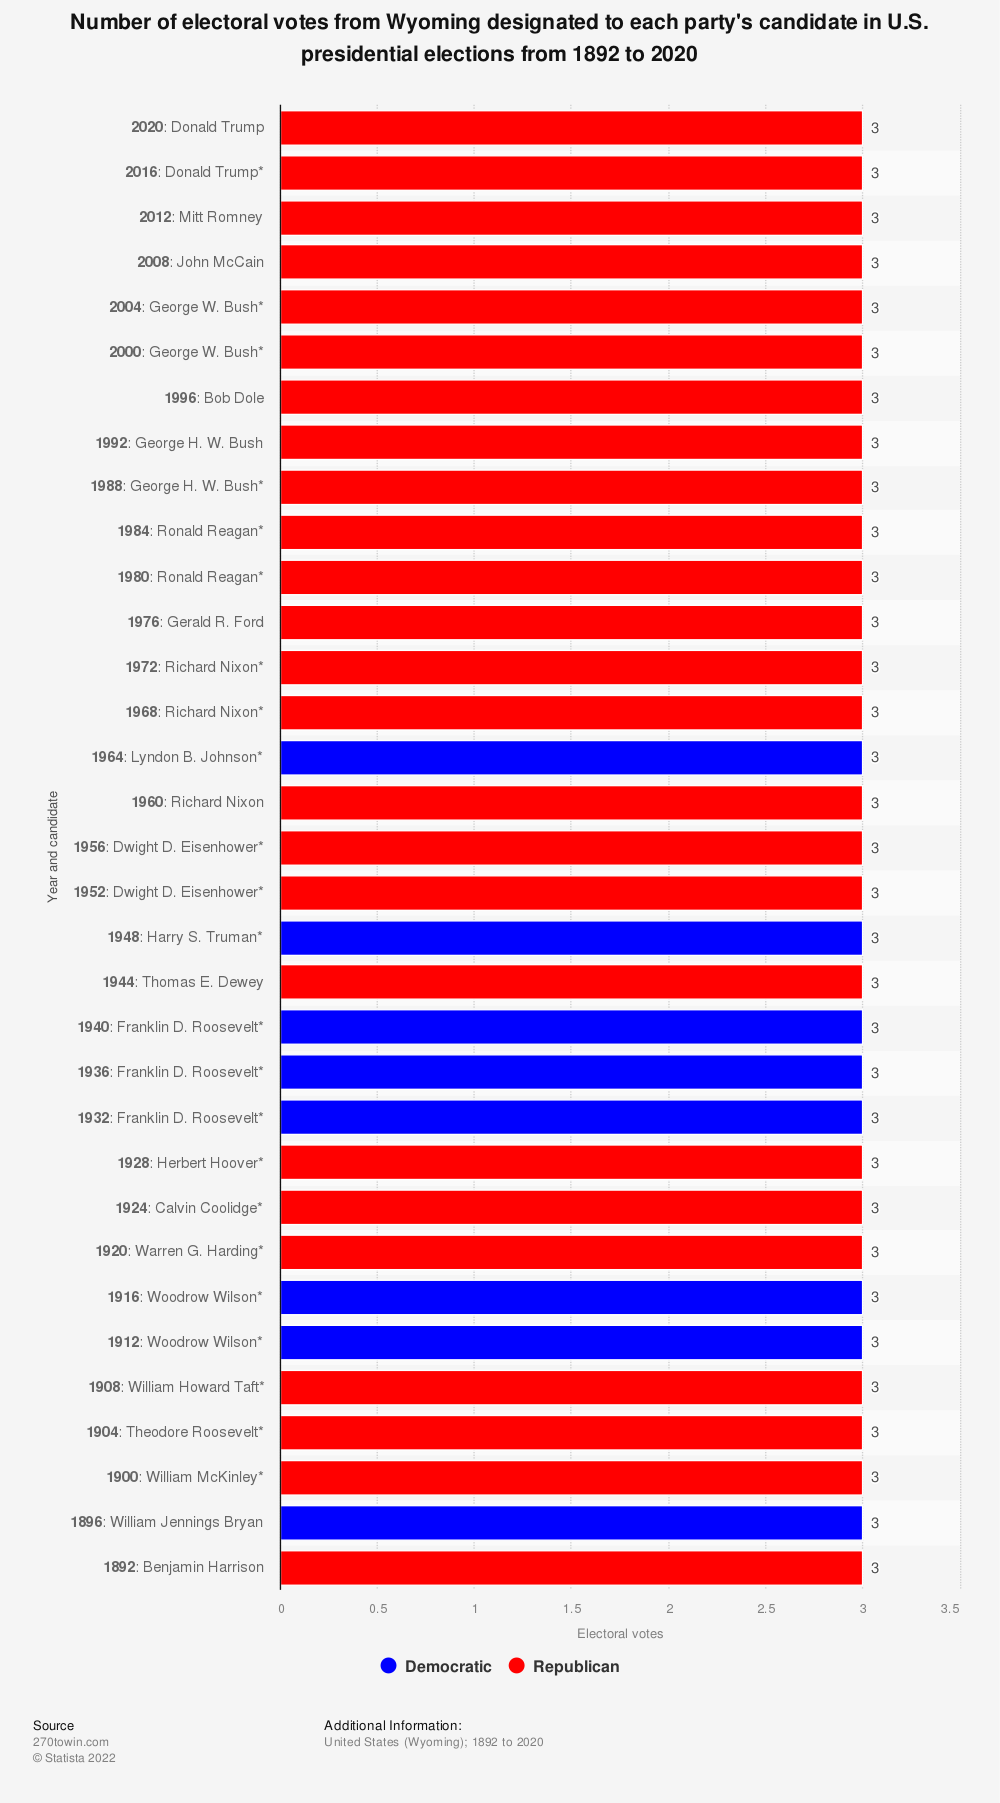 Statistic: Number of electoral votes from Wyoming designated to each party's candidate in U.S. presidential elections from 1892 to 2020 | Statista